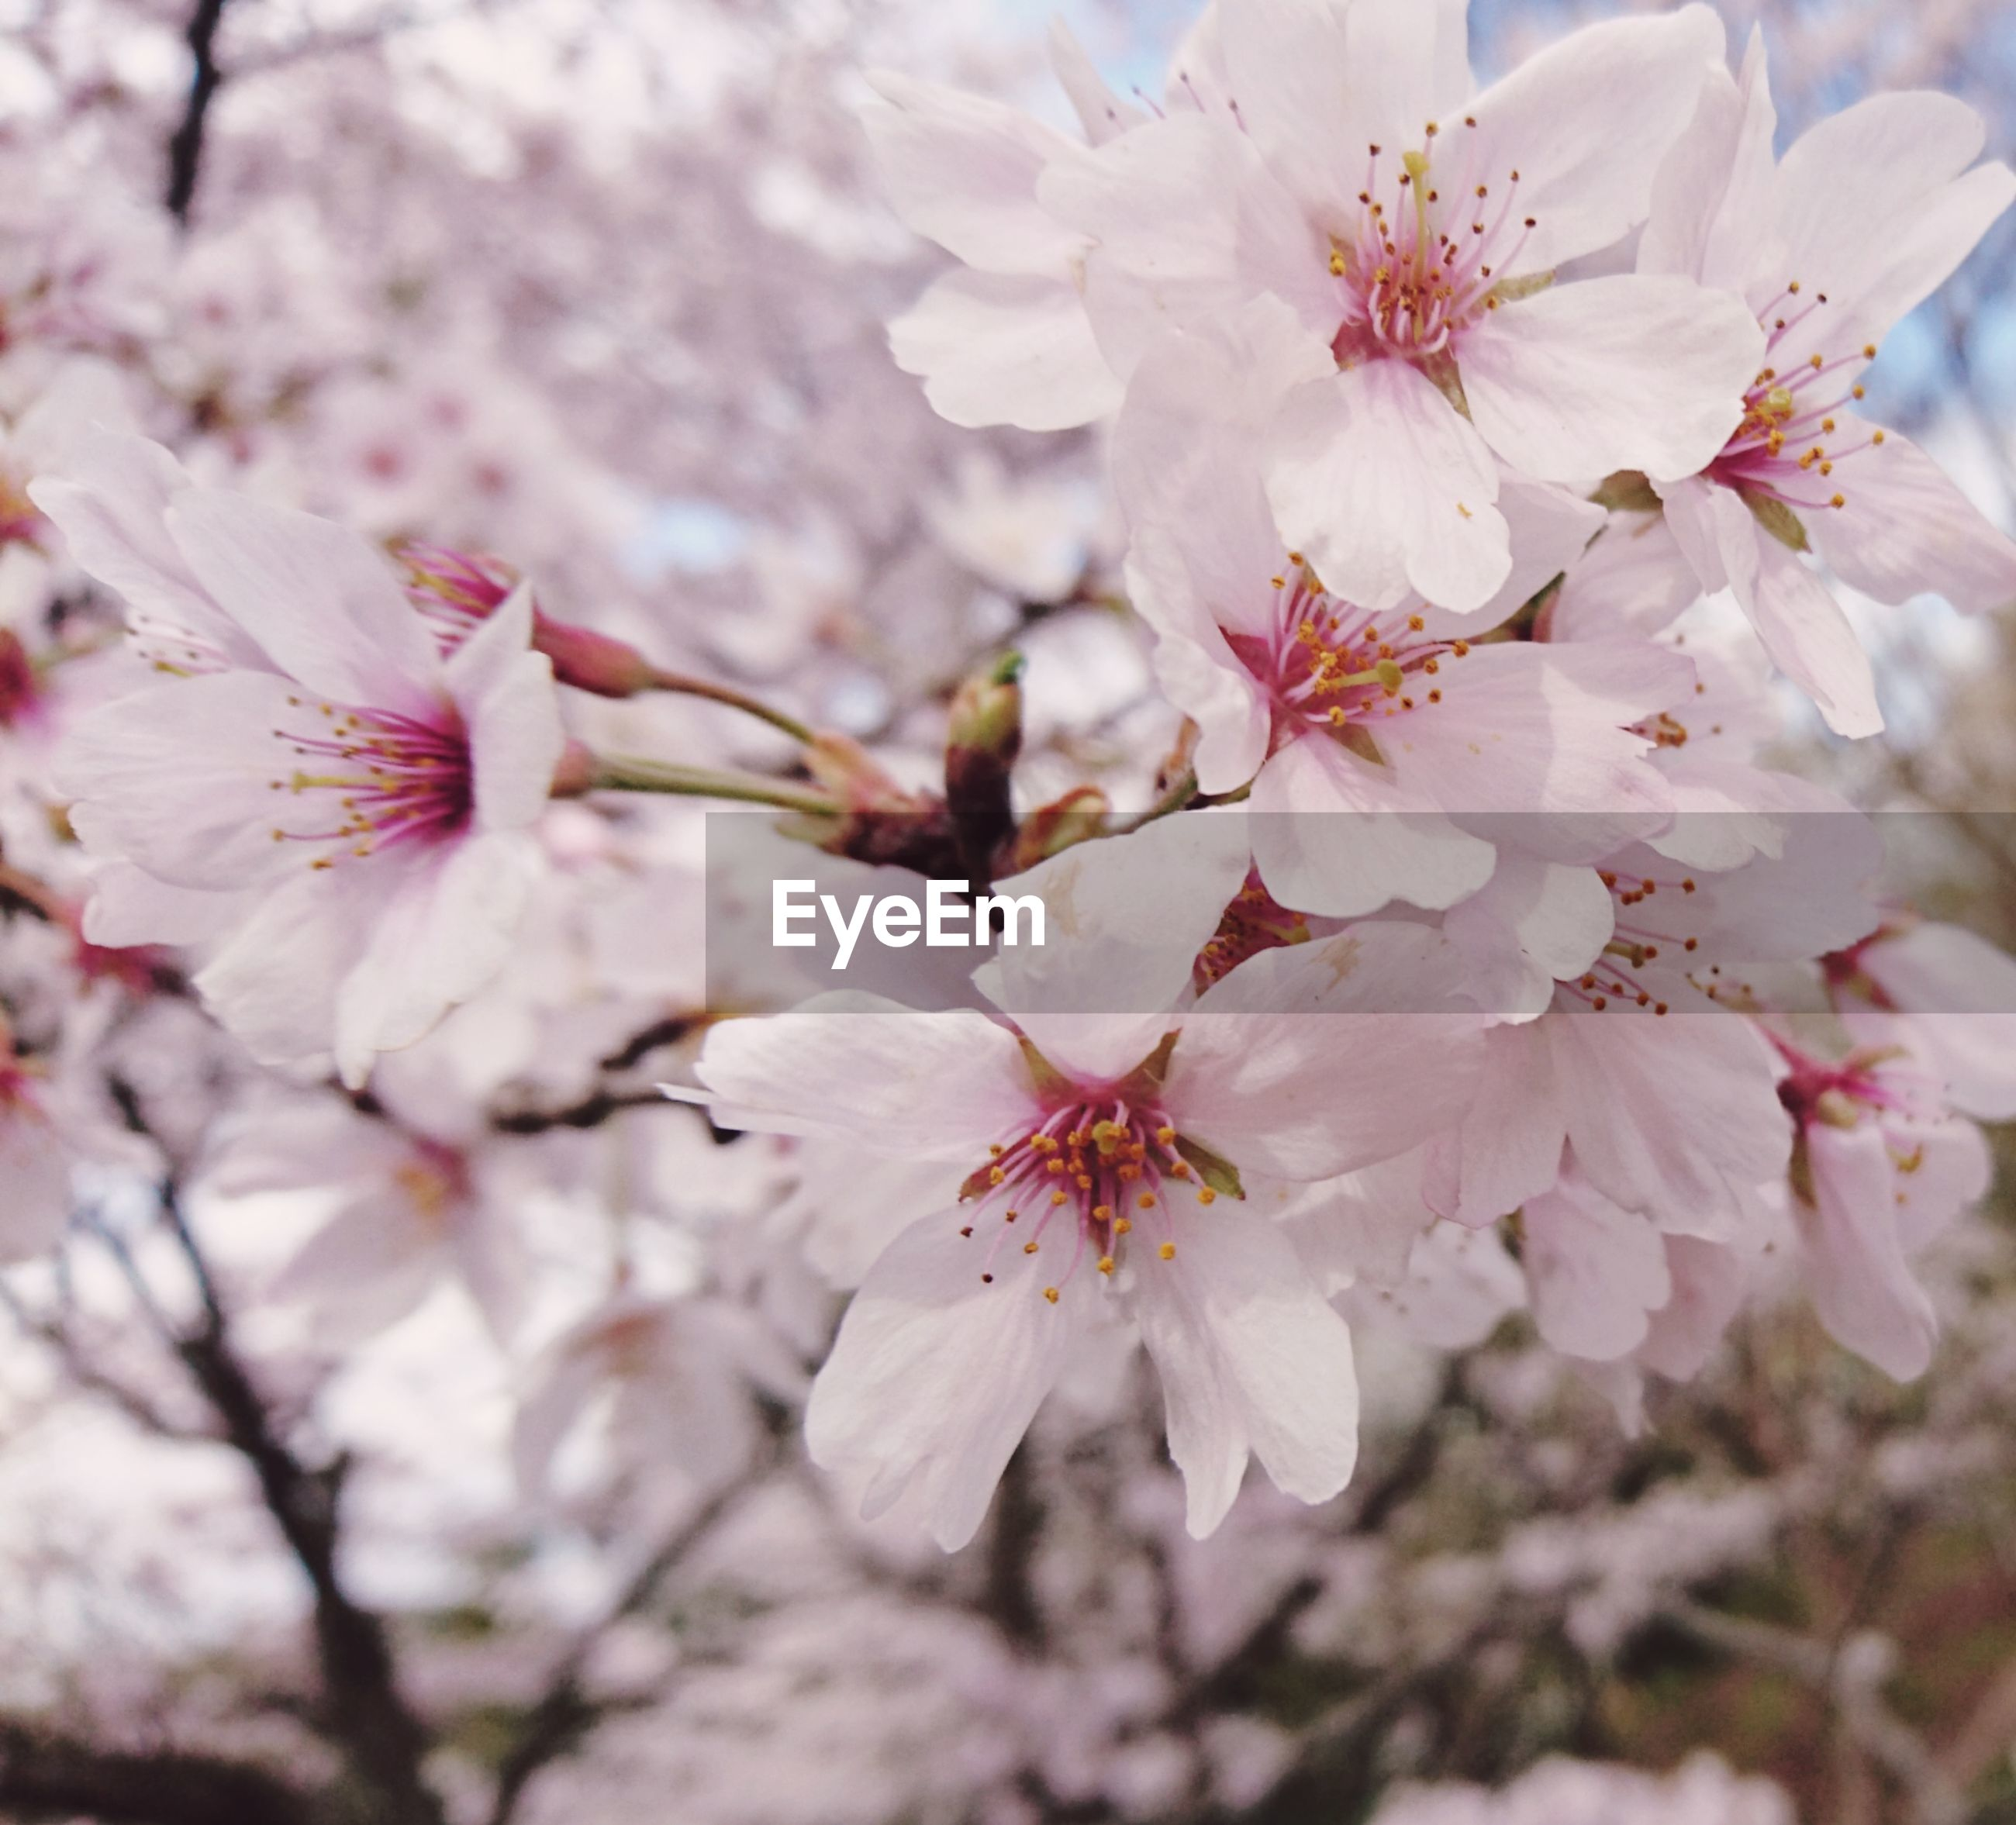 nature, beauty in nature, flower, close-up, growth, blossom, fragility, cherry tree, no people, outdoors, tree, cherry blossom, springtime, branch, petal, pink color, flower head, plant, almond tree, freshness, day, plum blossom